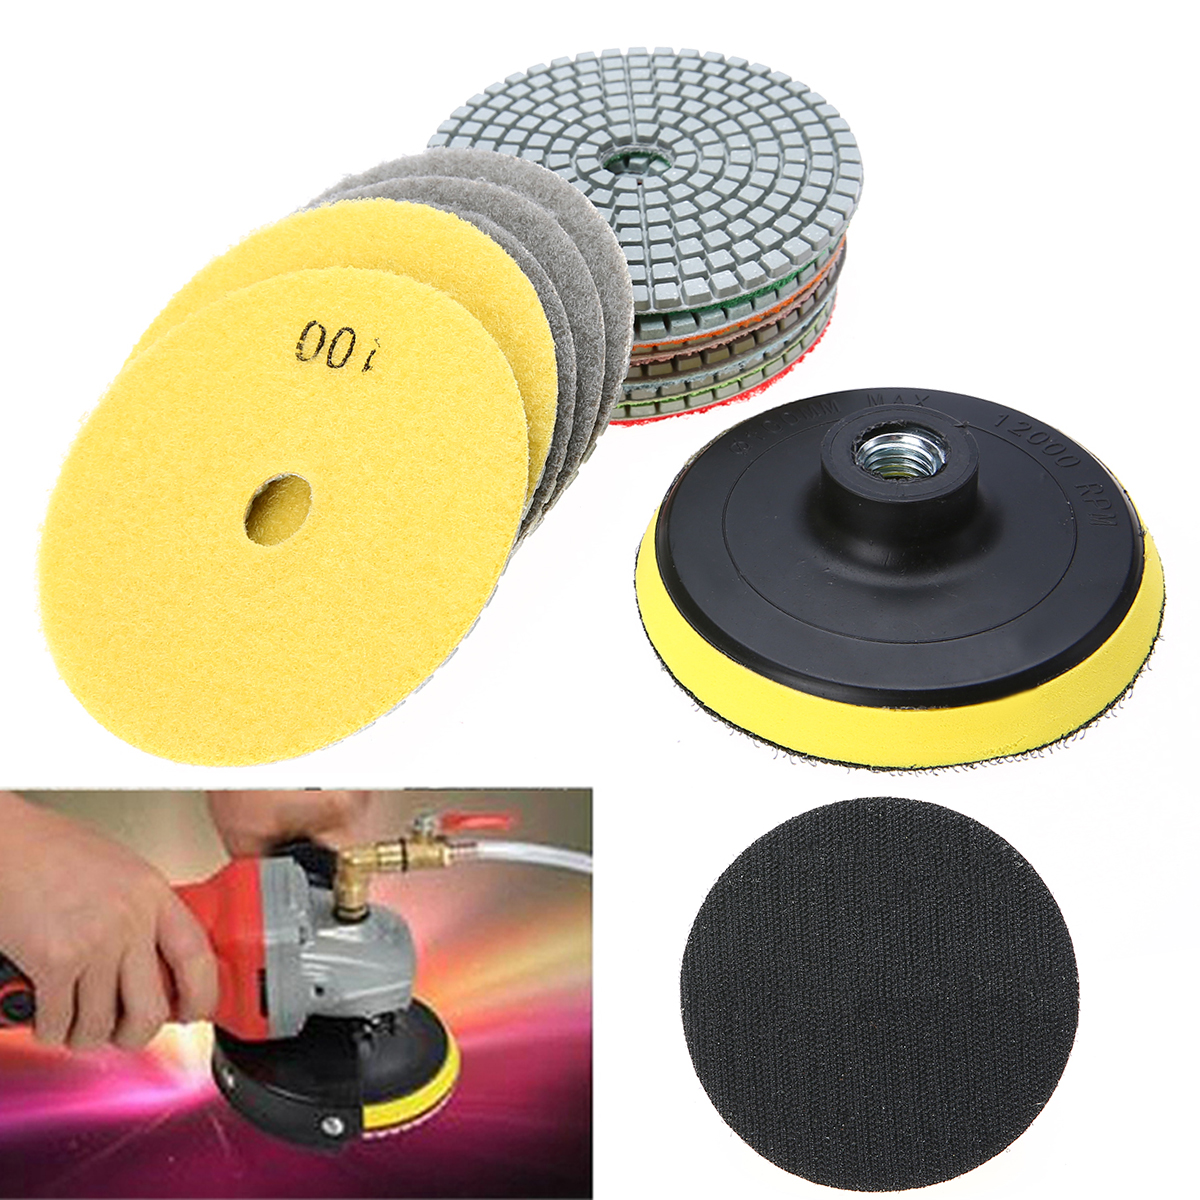 12pcs 4 inch Diamond Polishing Pads With Polishing Wheel Set Mayitr For Granite Concrete Marble working with concrete